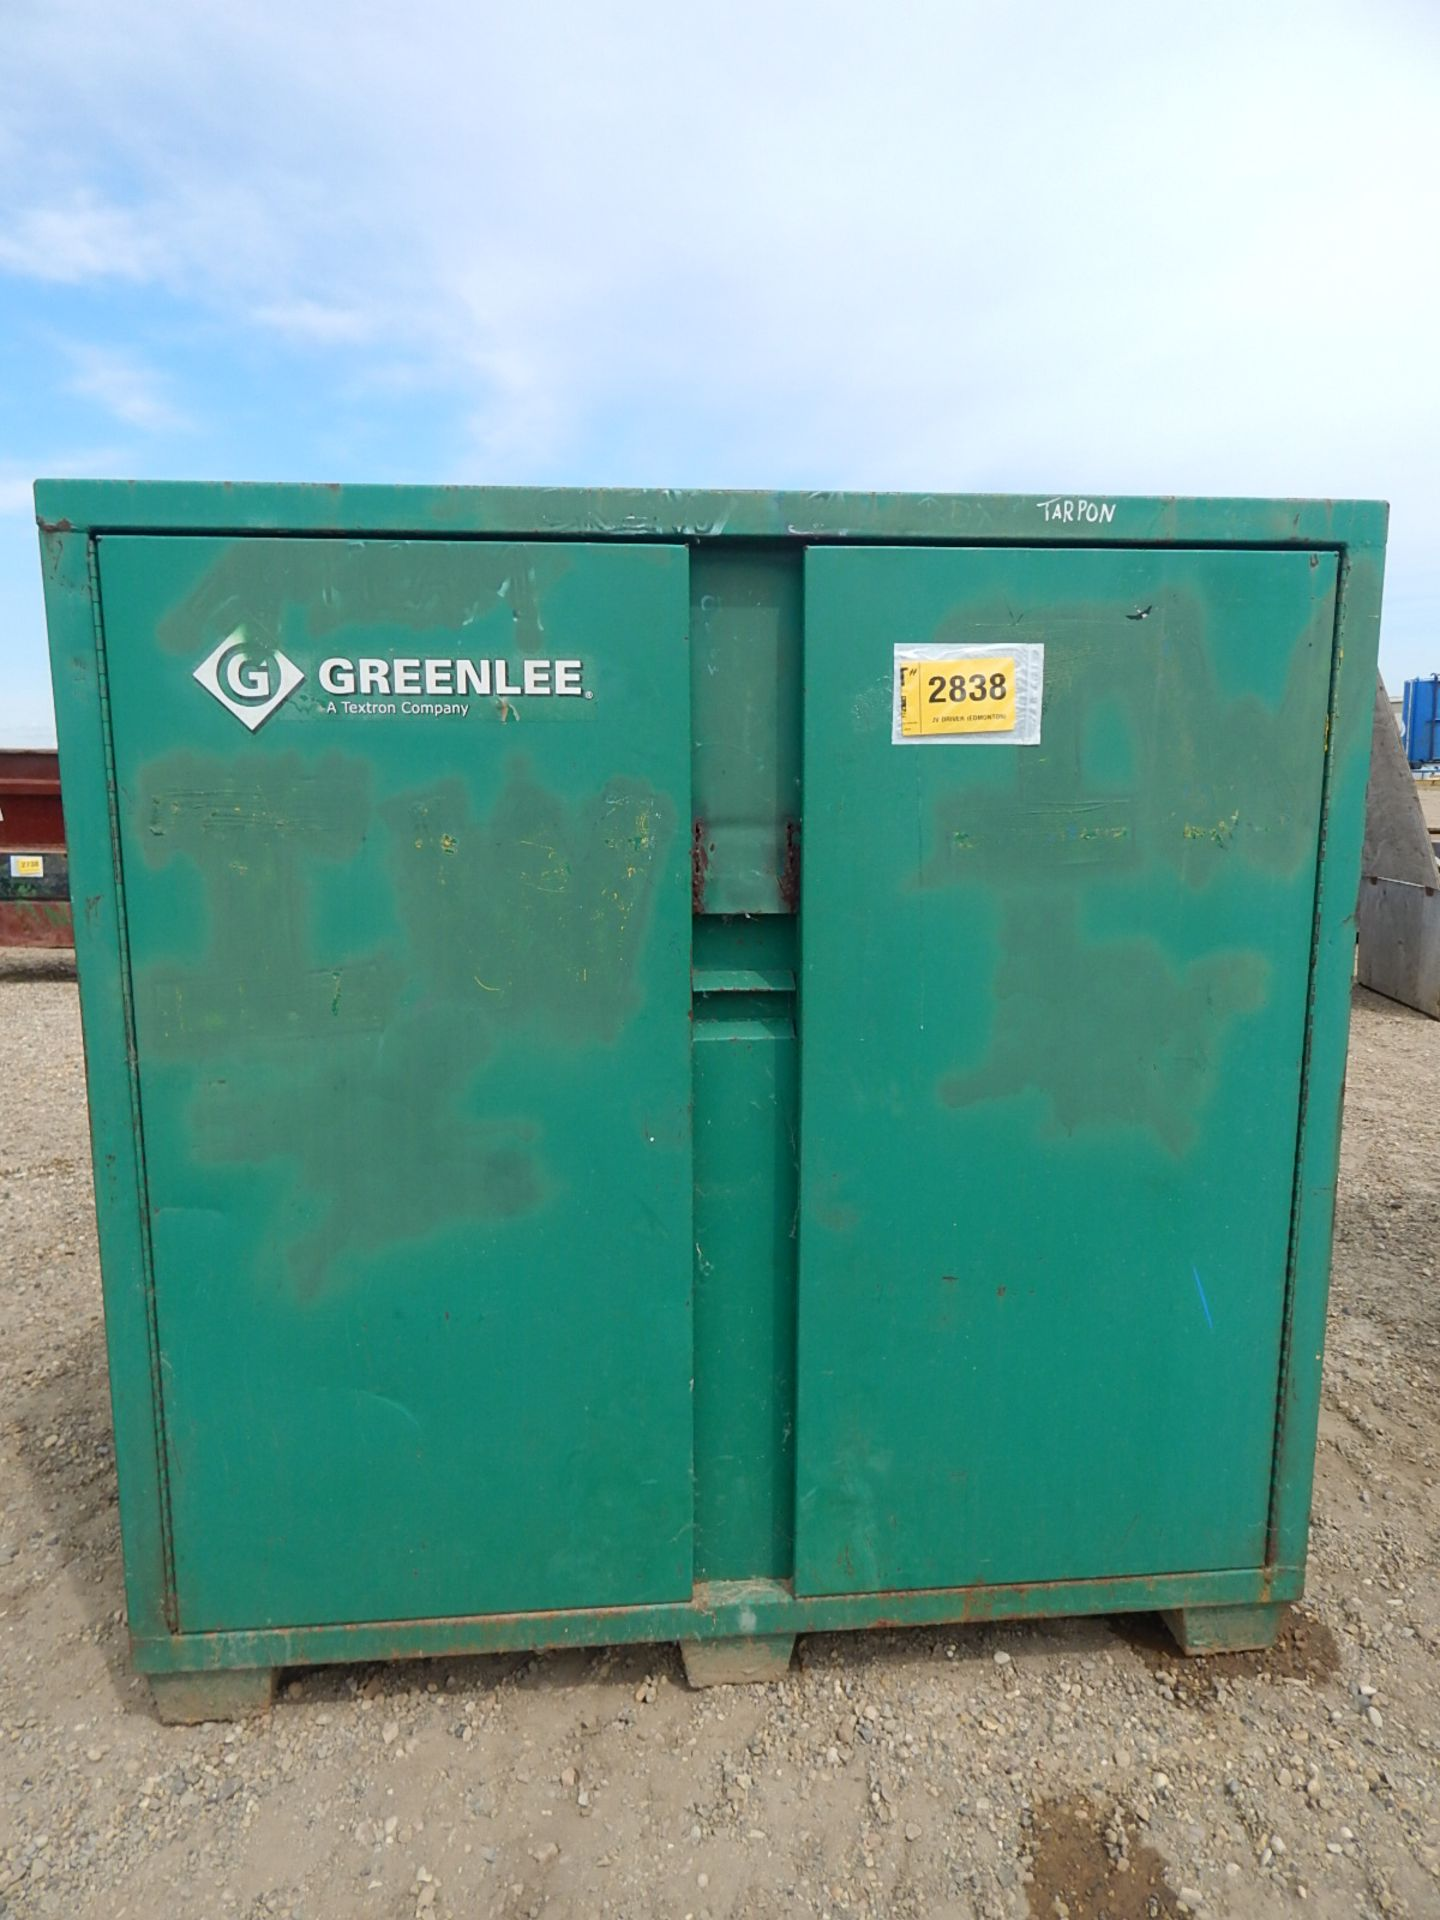 LOT/ (2) GREENLEE 2-DOOR JOB BOX CABINETS